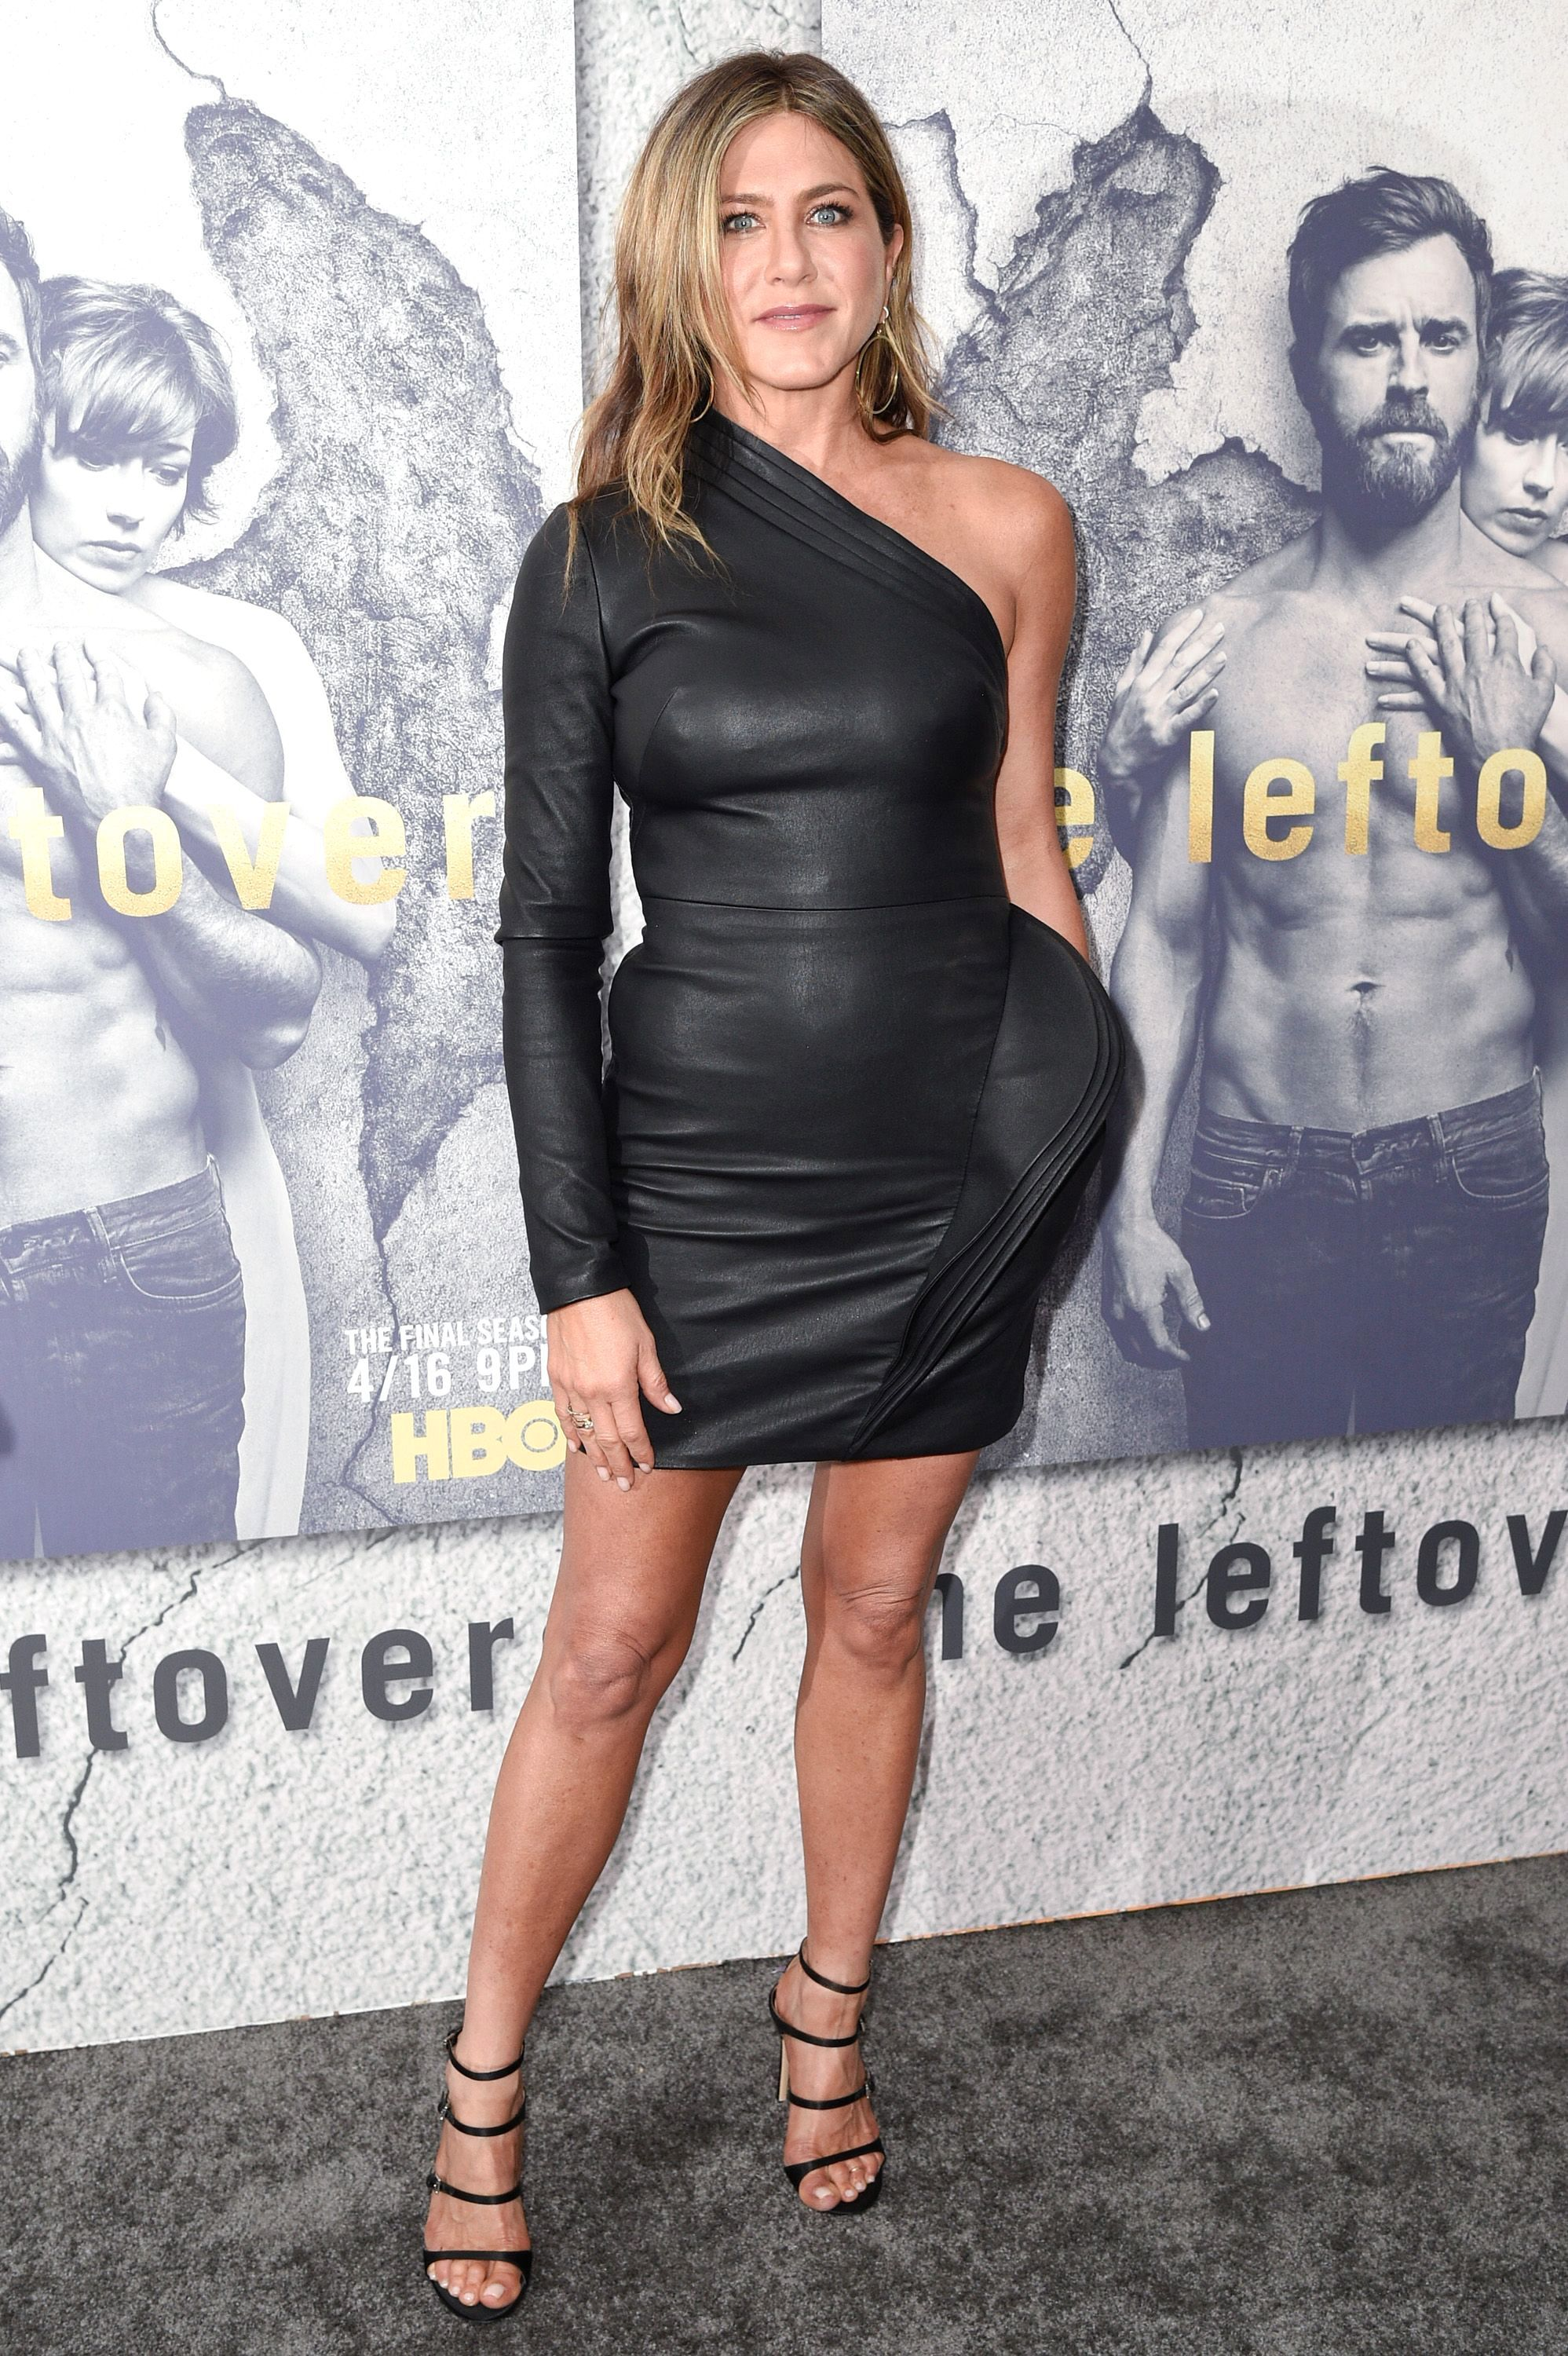 """Jennifer Aniston attends the Season 3 premiere of """"The Leftovers"""" in Los Angeles on April 4, 2017."""